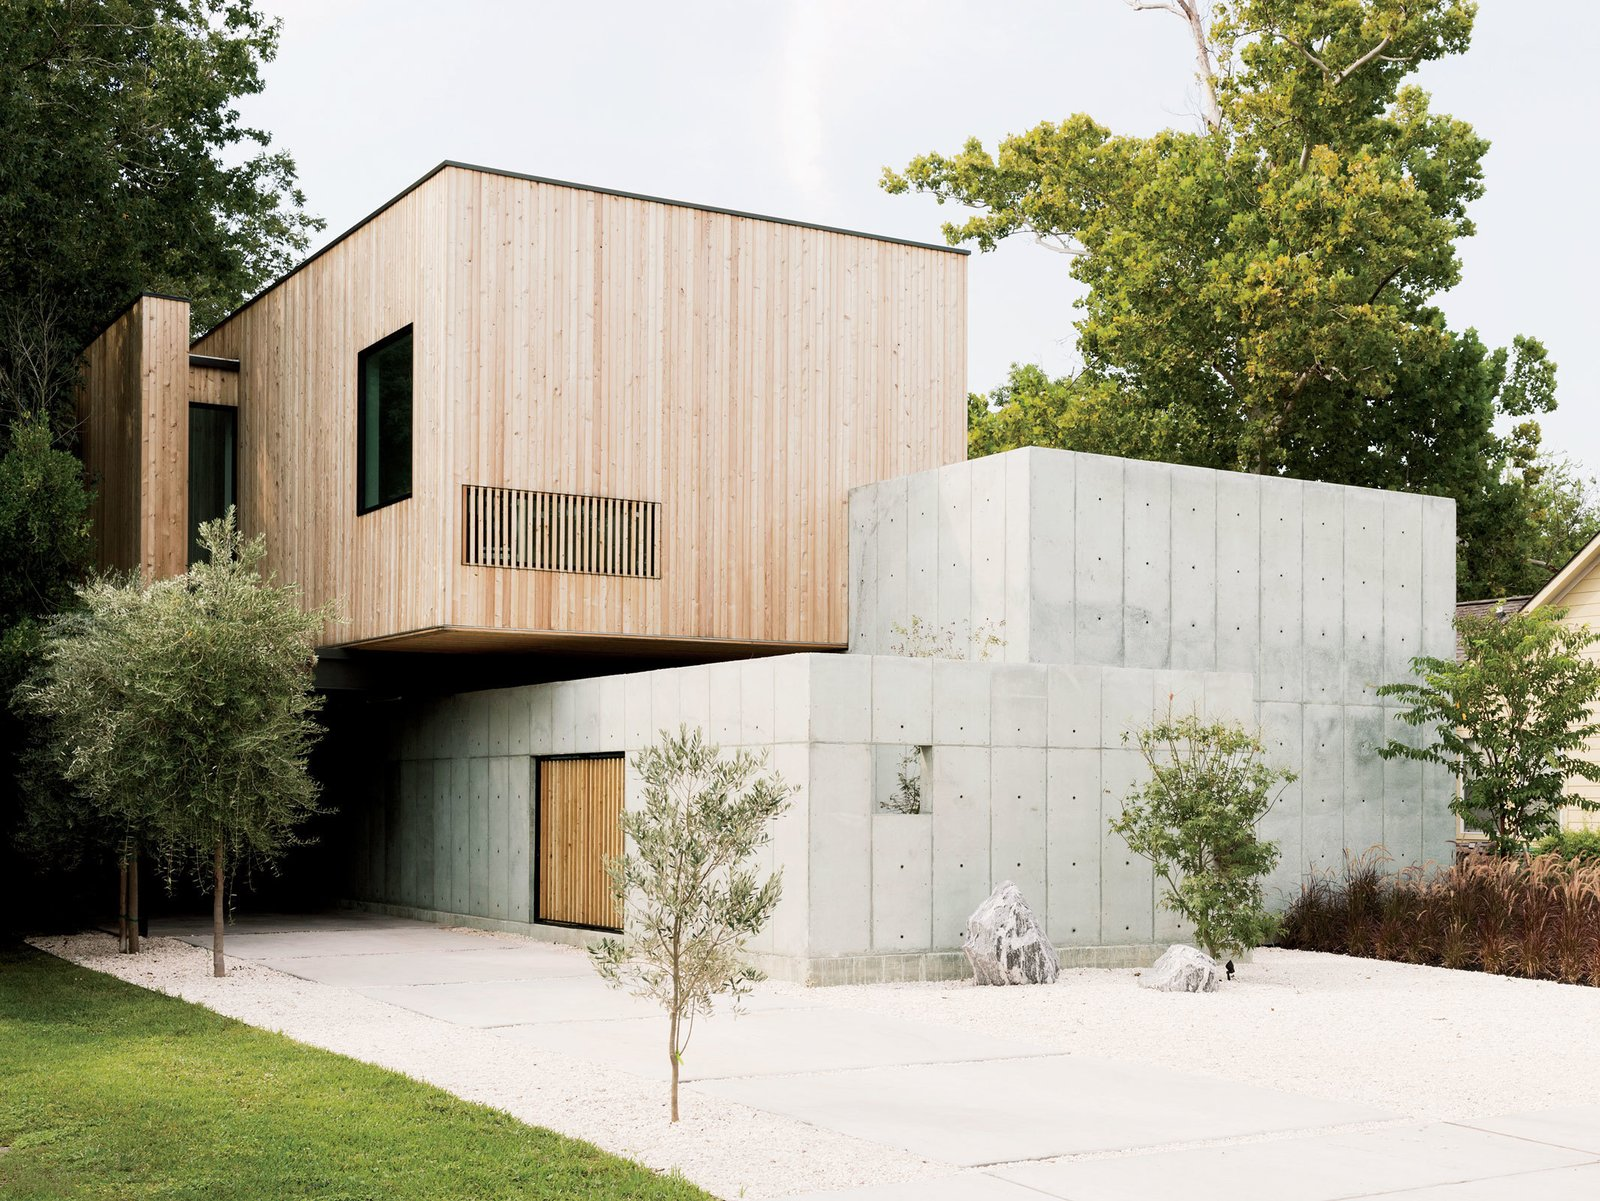 Articles about texas couple builds their cast place concrete dream home on Dwell.com